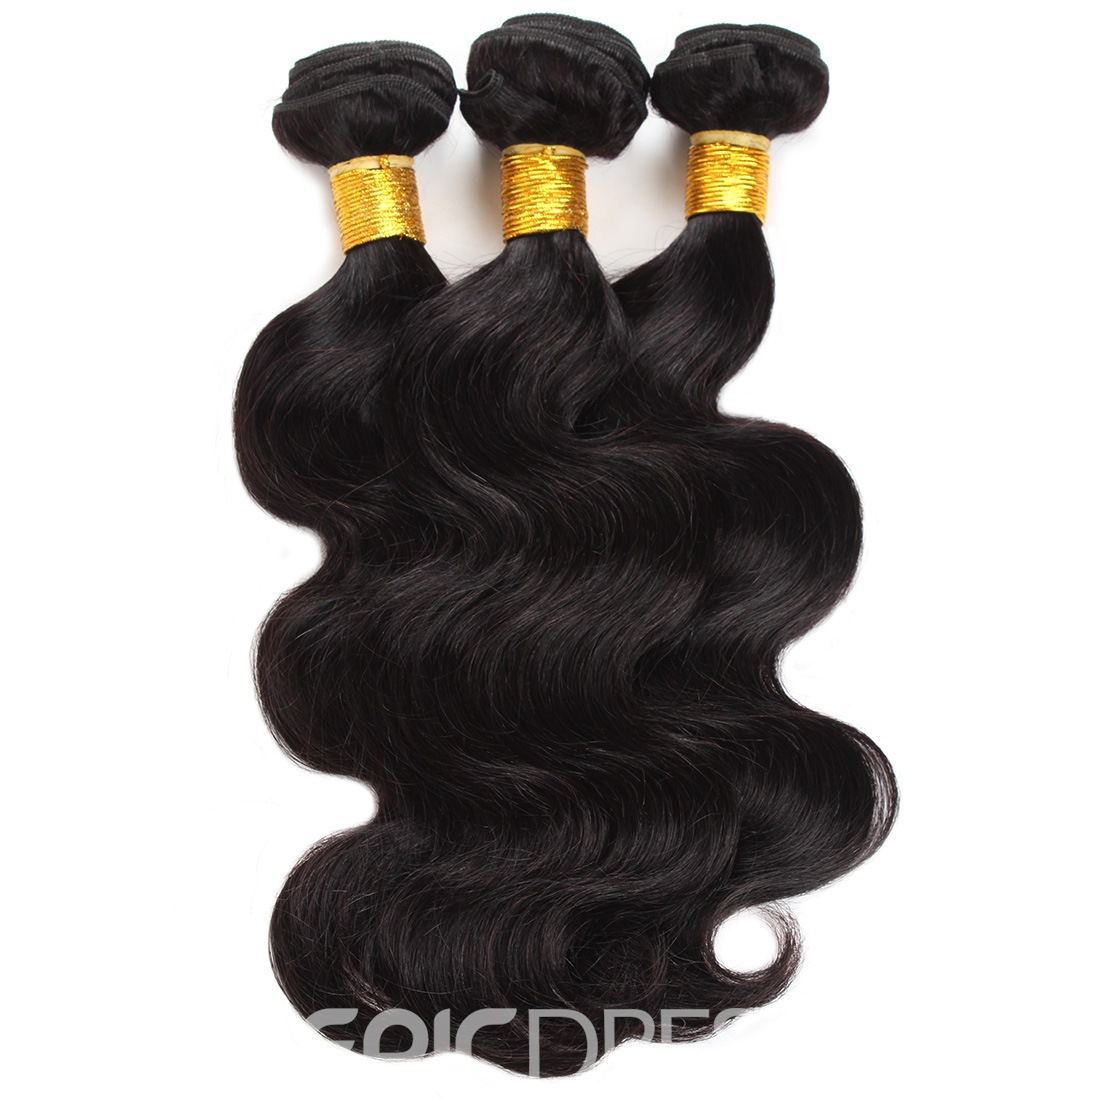 Ericdress Unprocessed Malaysian Human Hair Extensions Virgin Hair Body Wave Hair Bundles